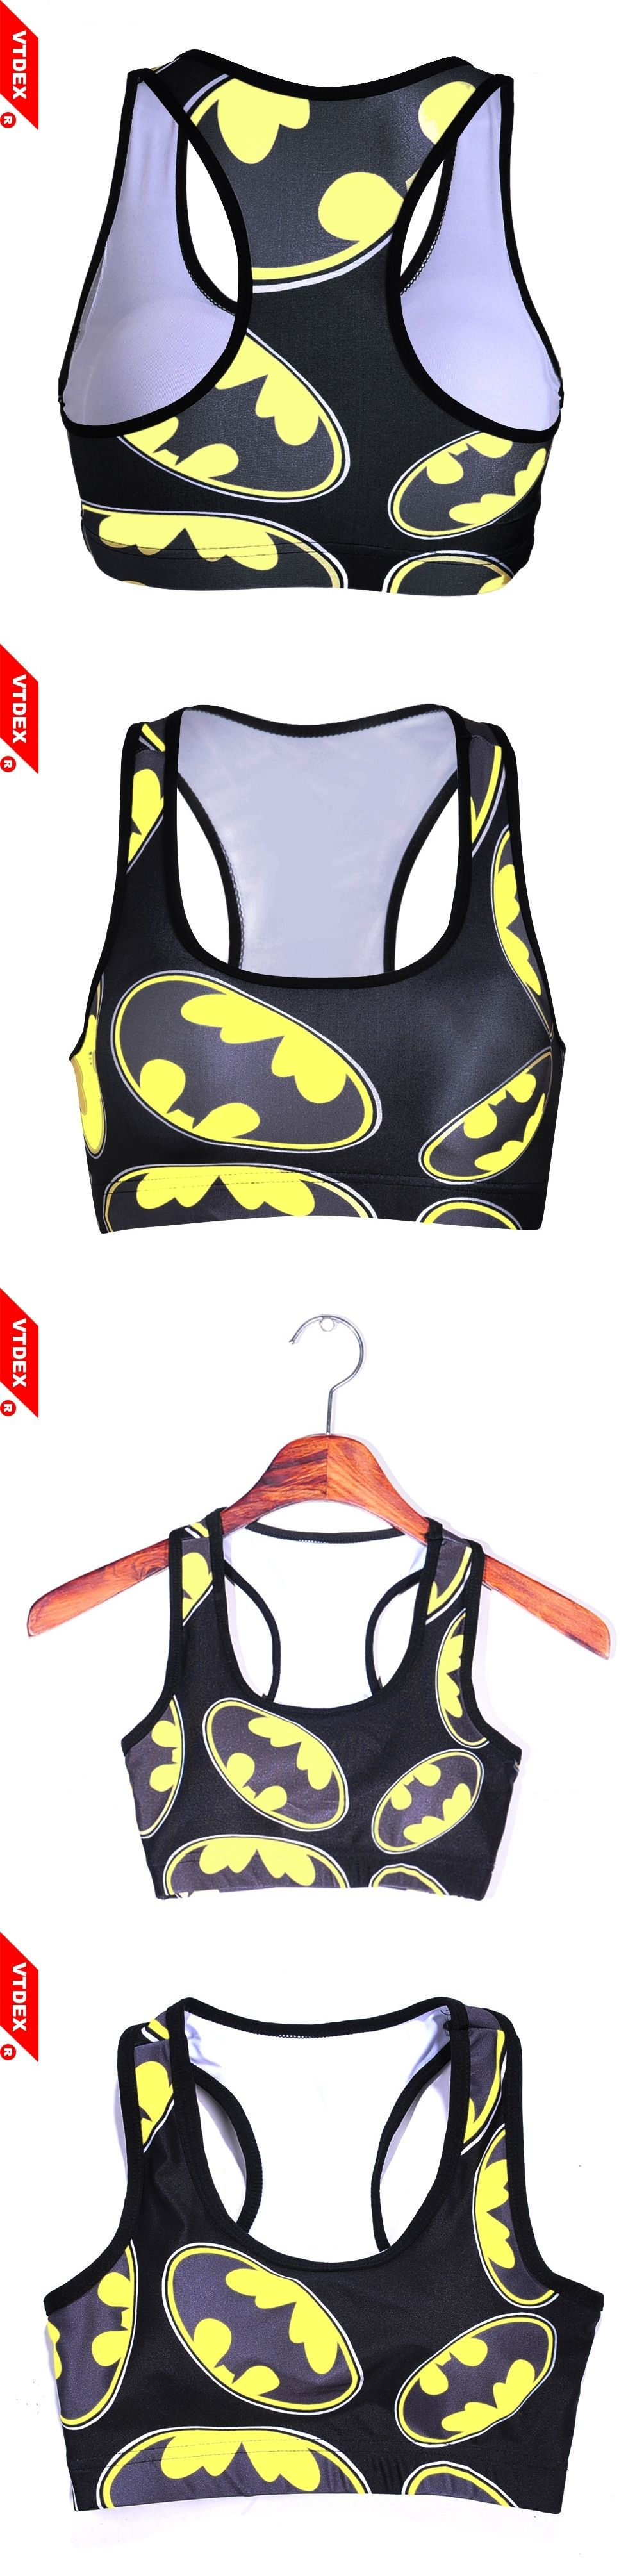 edd3bcaa8d 2017 Breathable Batman Bra Sujetador Deportivo Cropped Women Sports Gym  Sexy Push Up For Shakeproof Fitness